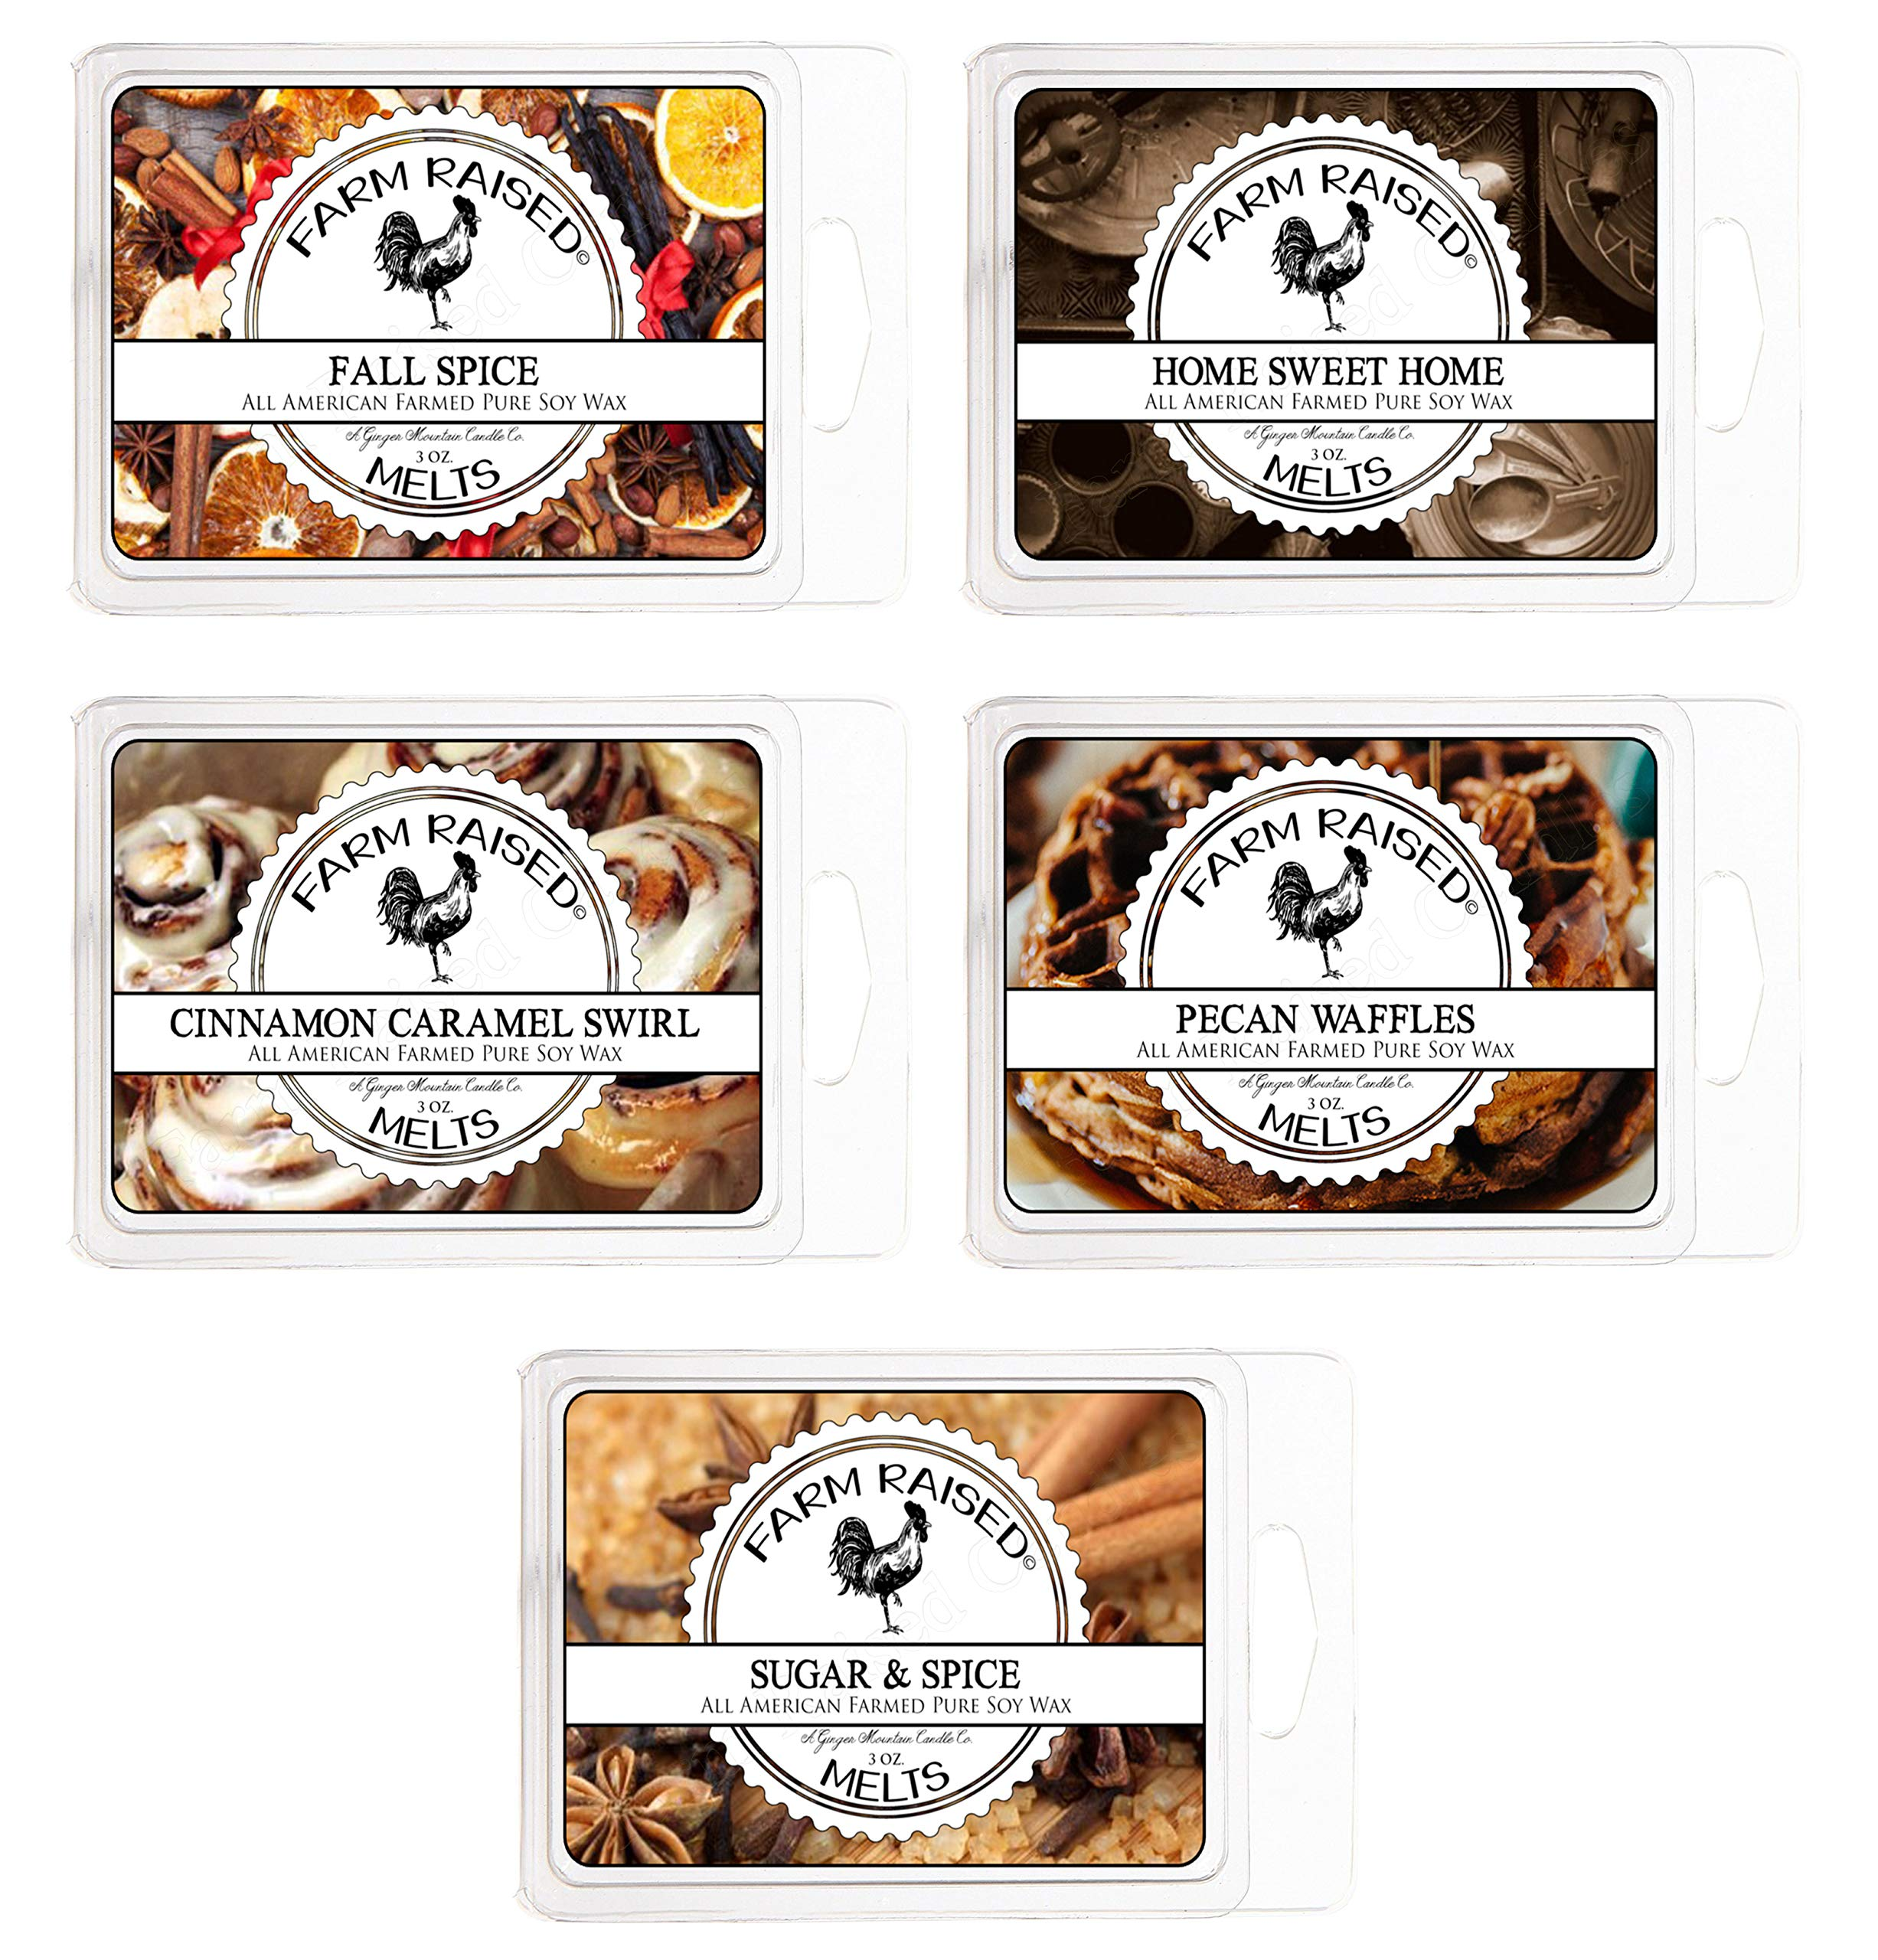 Farm Raised Candles Fall Spice Variety Assorted Mix 5 Pack.15 Ounces 100% All American Natural Made Paraffin-Free Scented Wax Melts Warmer Cubes. Scented Tarts Vegan Wax Melts. Like Candle Tarts Bars by Farm Raised Candles